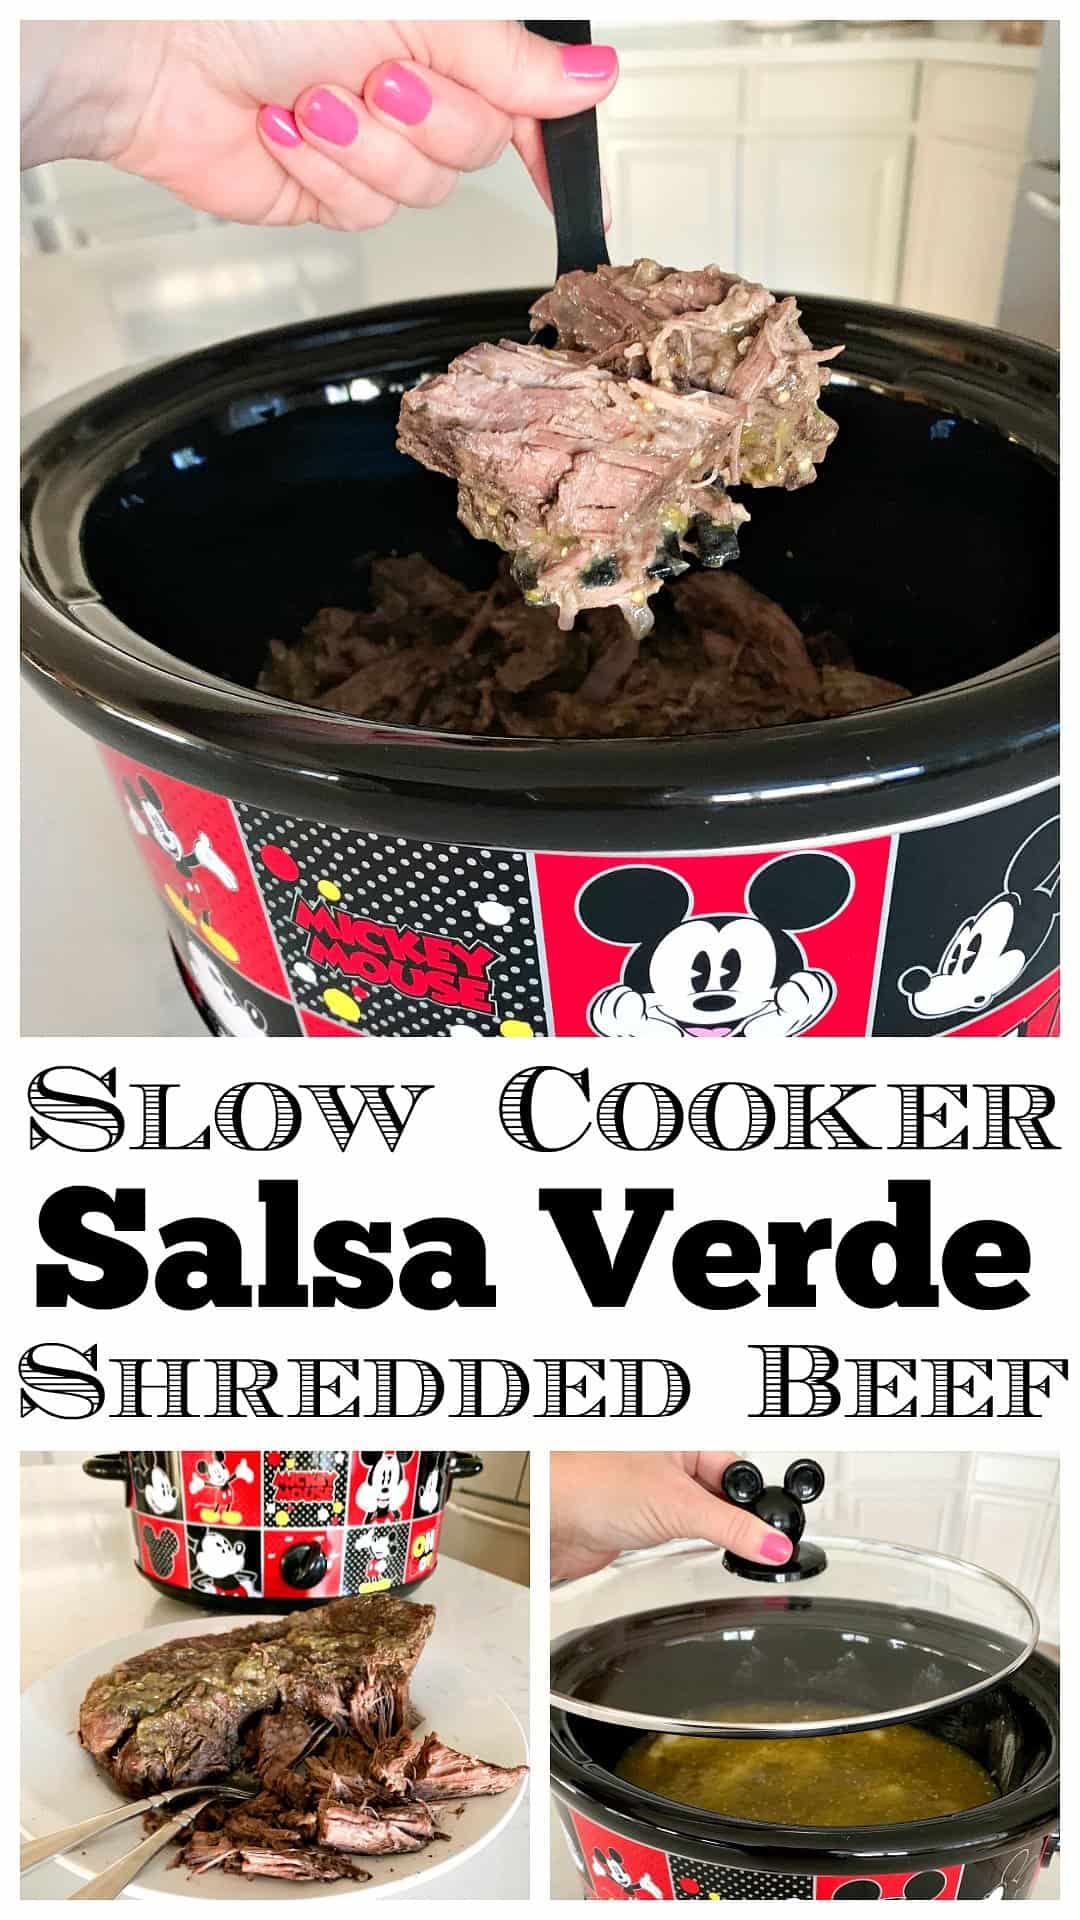 photo collage shredded beef recipe